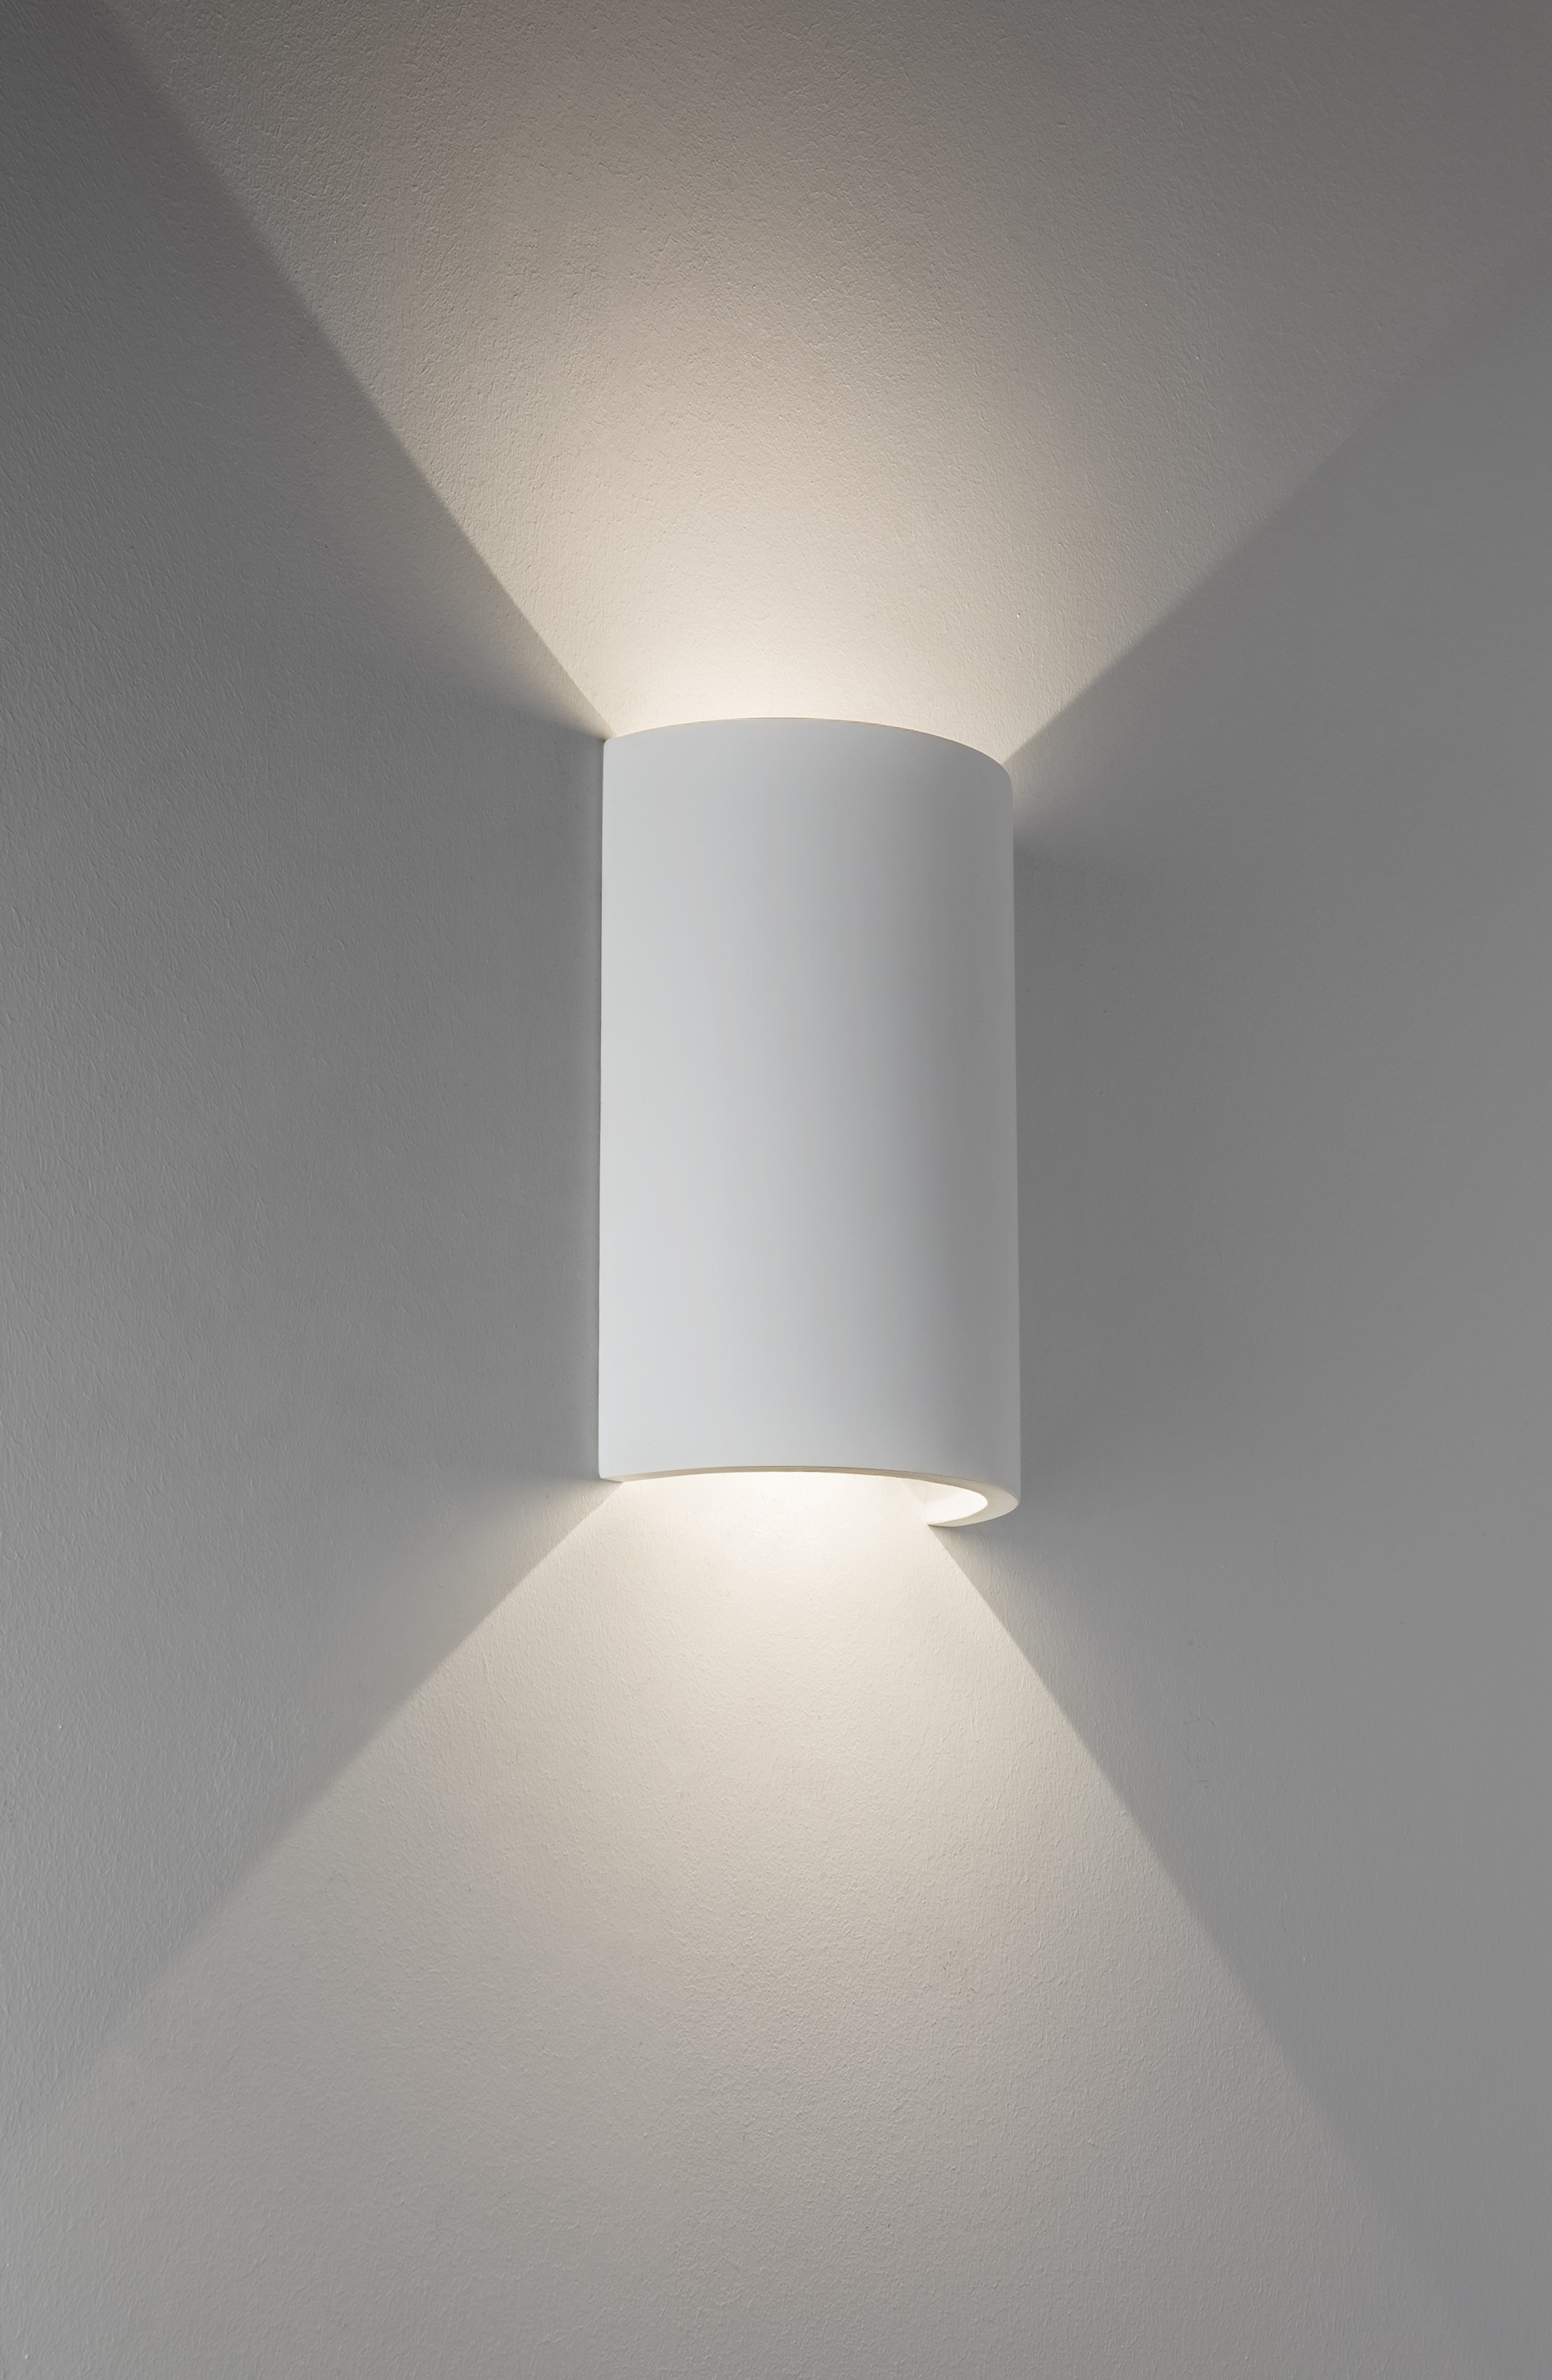 runde led wandlampe in wei schlichtes design up downlight serifos 170. Black Bedroom Furniture Sets. Home Design Ideas